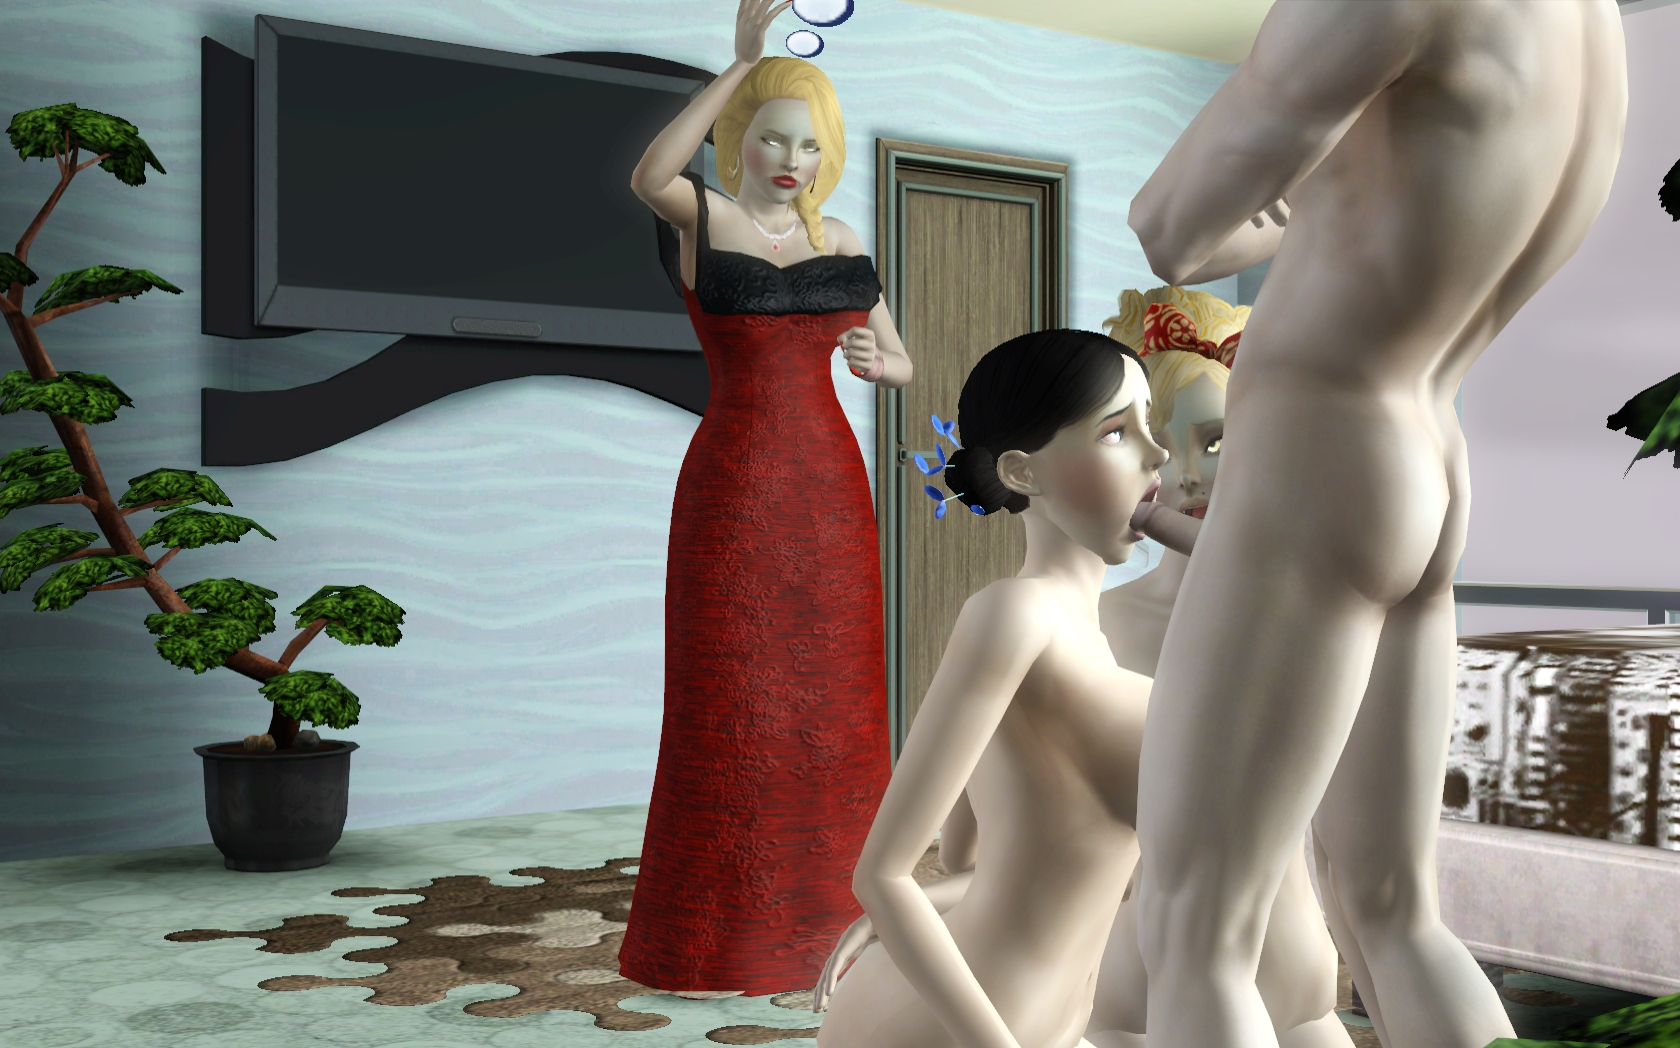 Super nude mod the sims naked galleries